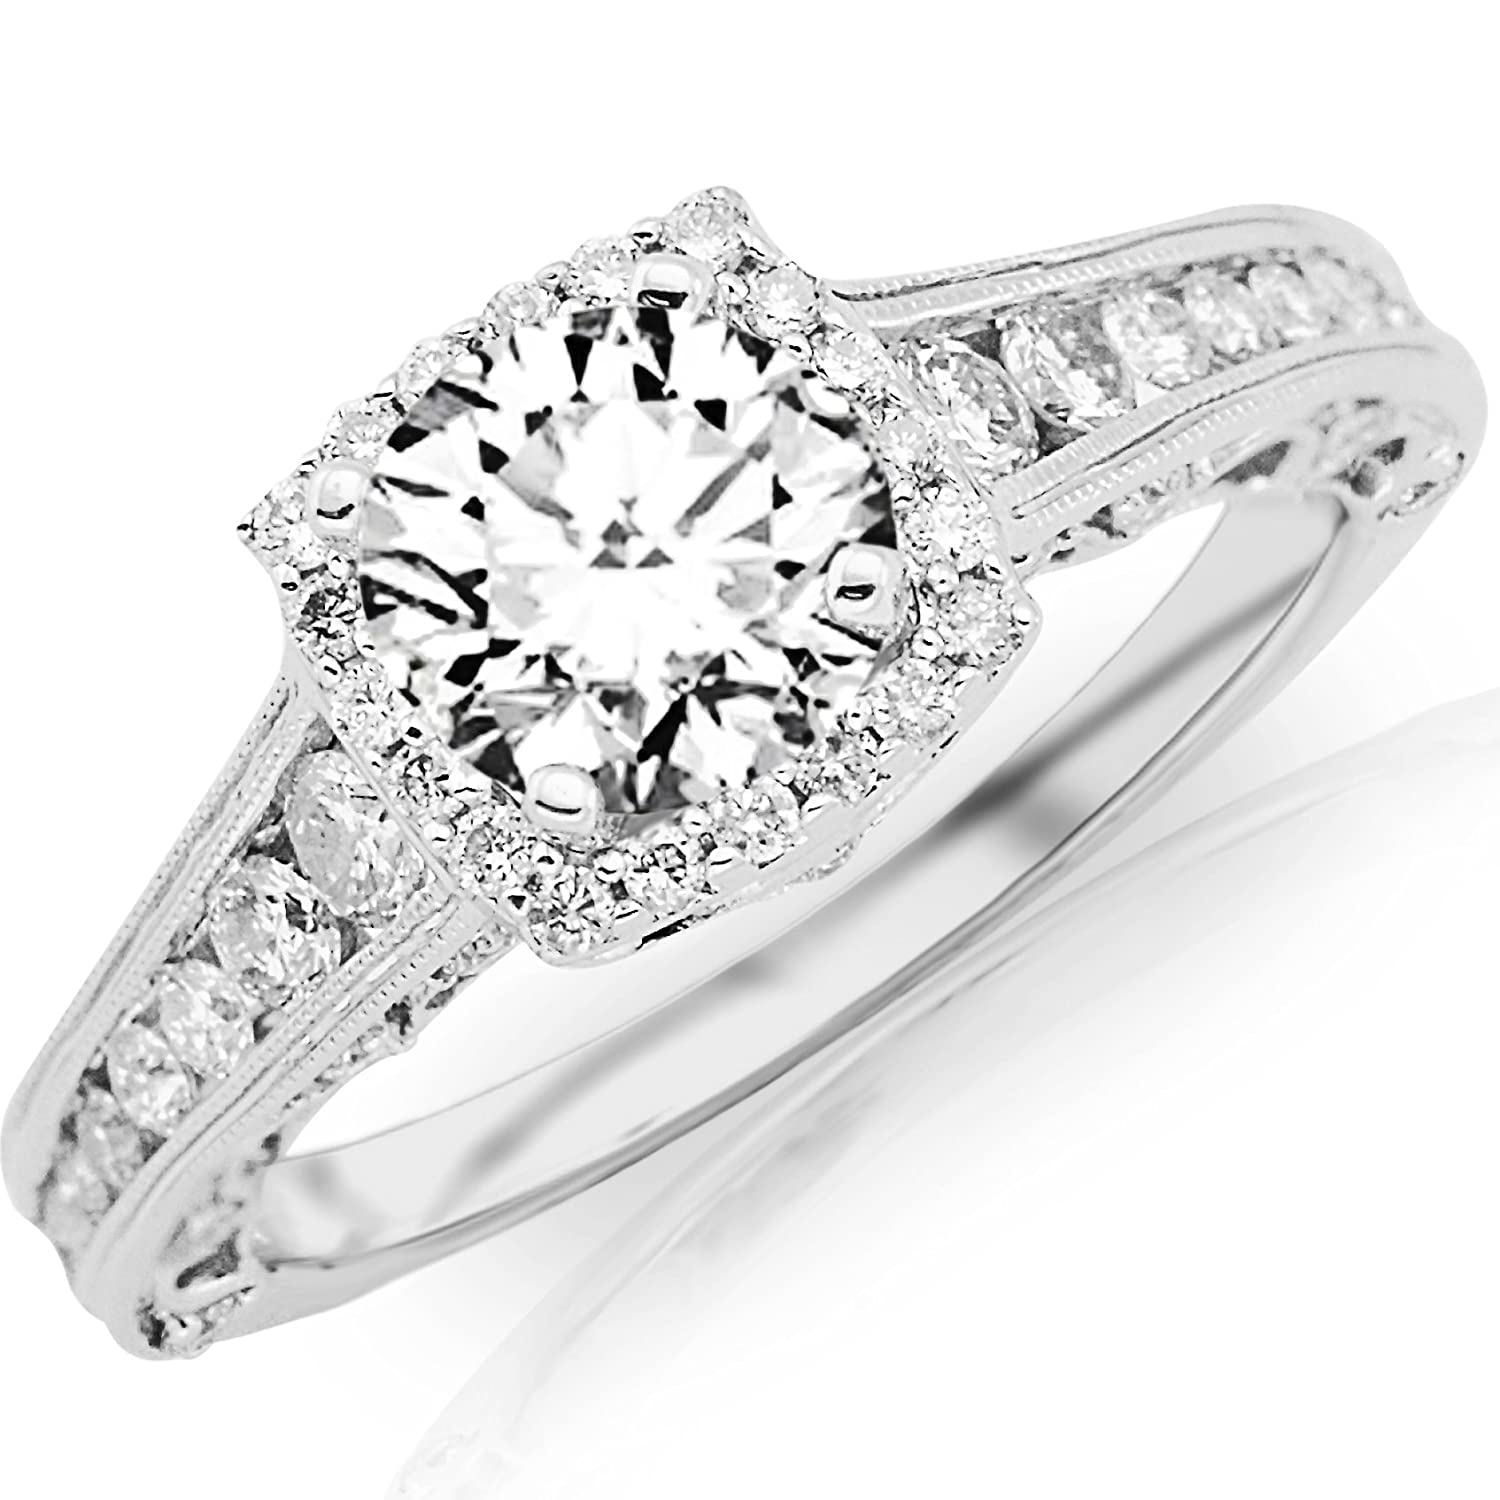 jewellery in wa aj aaa usa diamond gorgeous ring retail of engagement rings